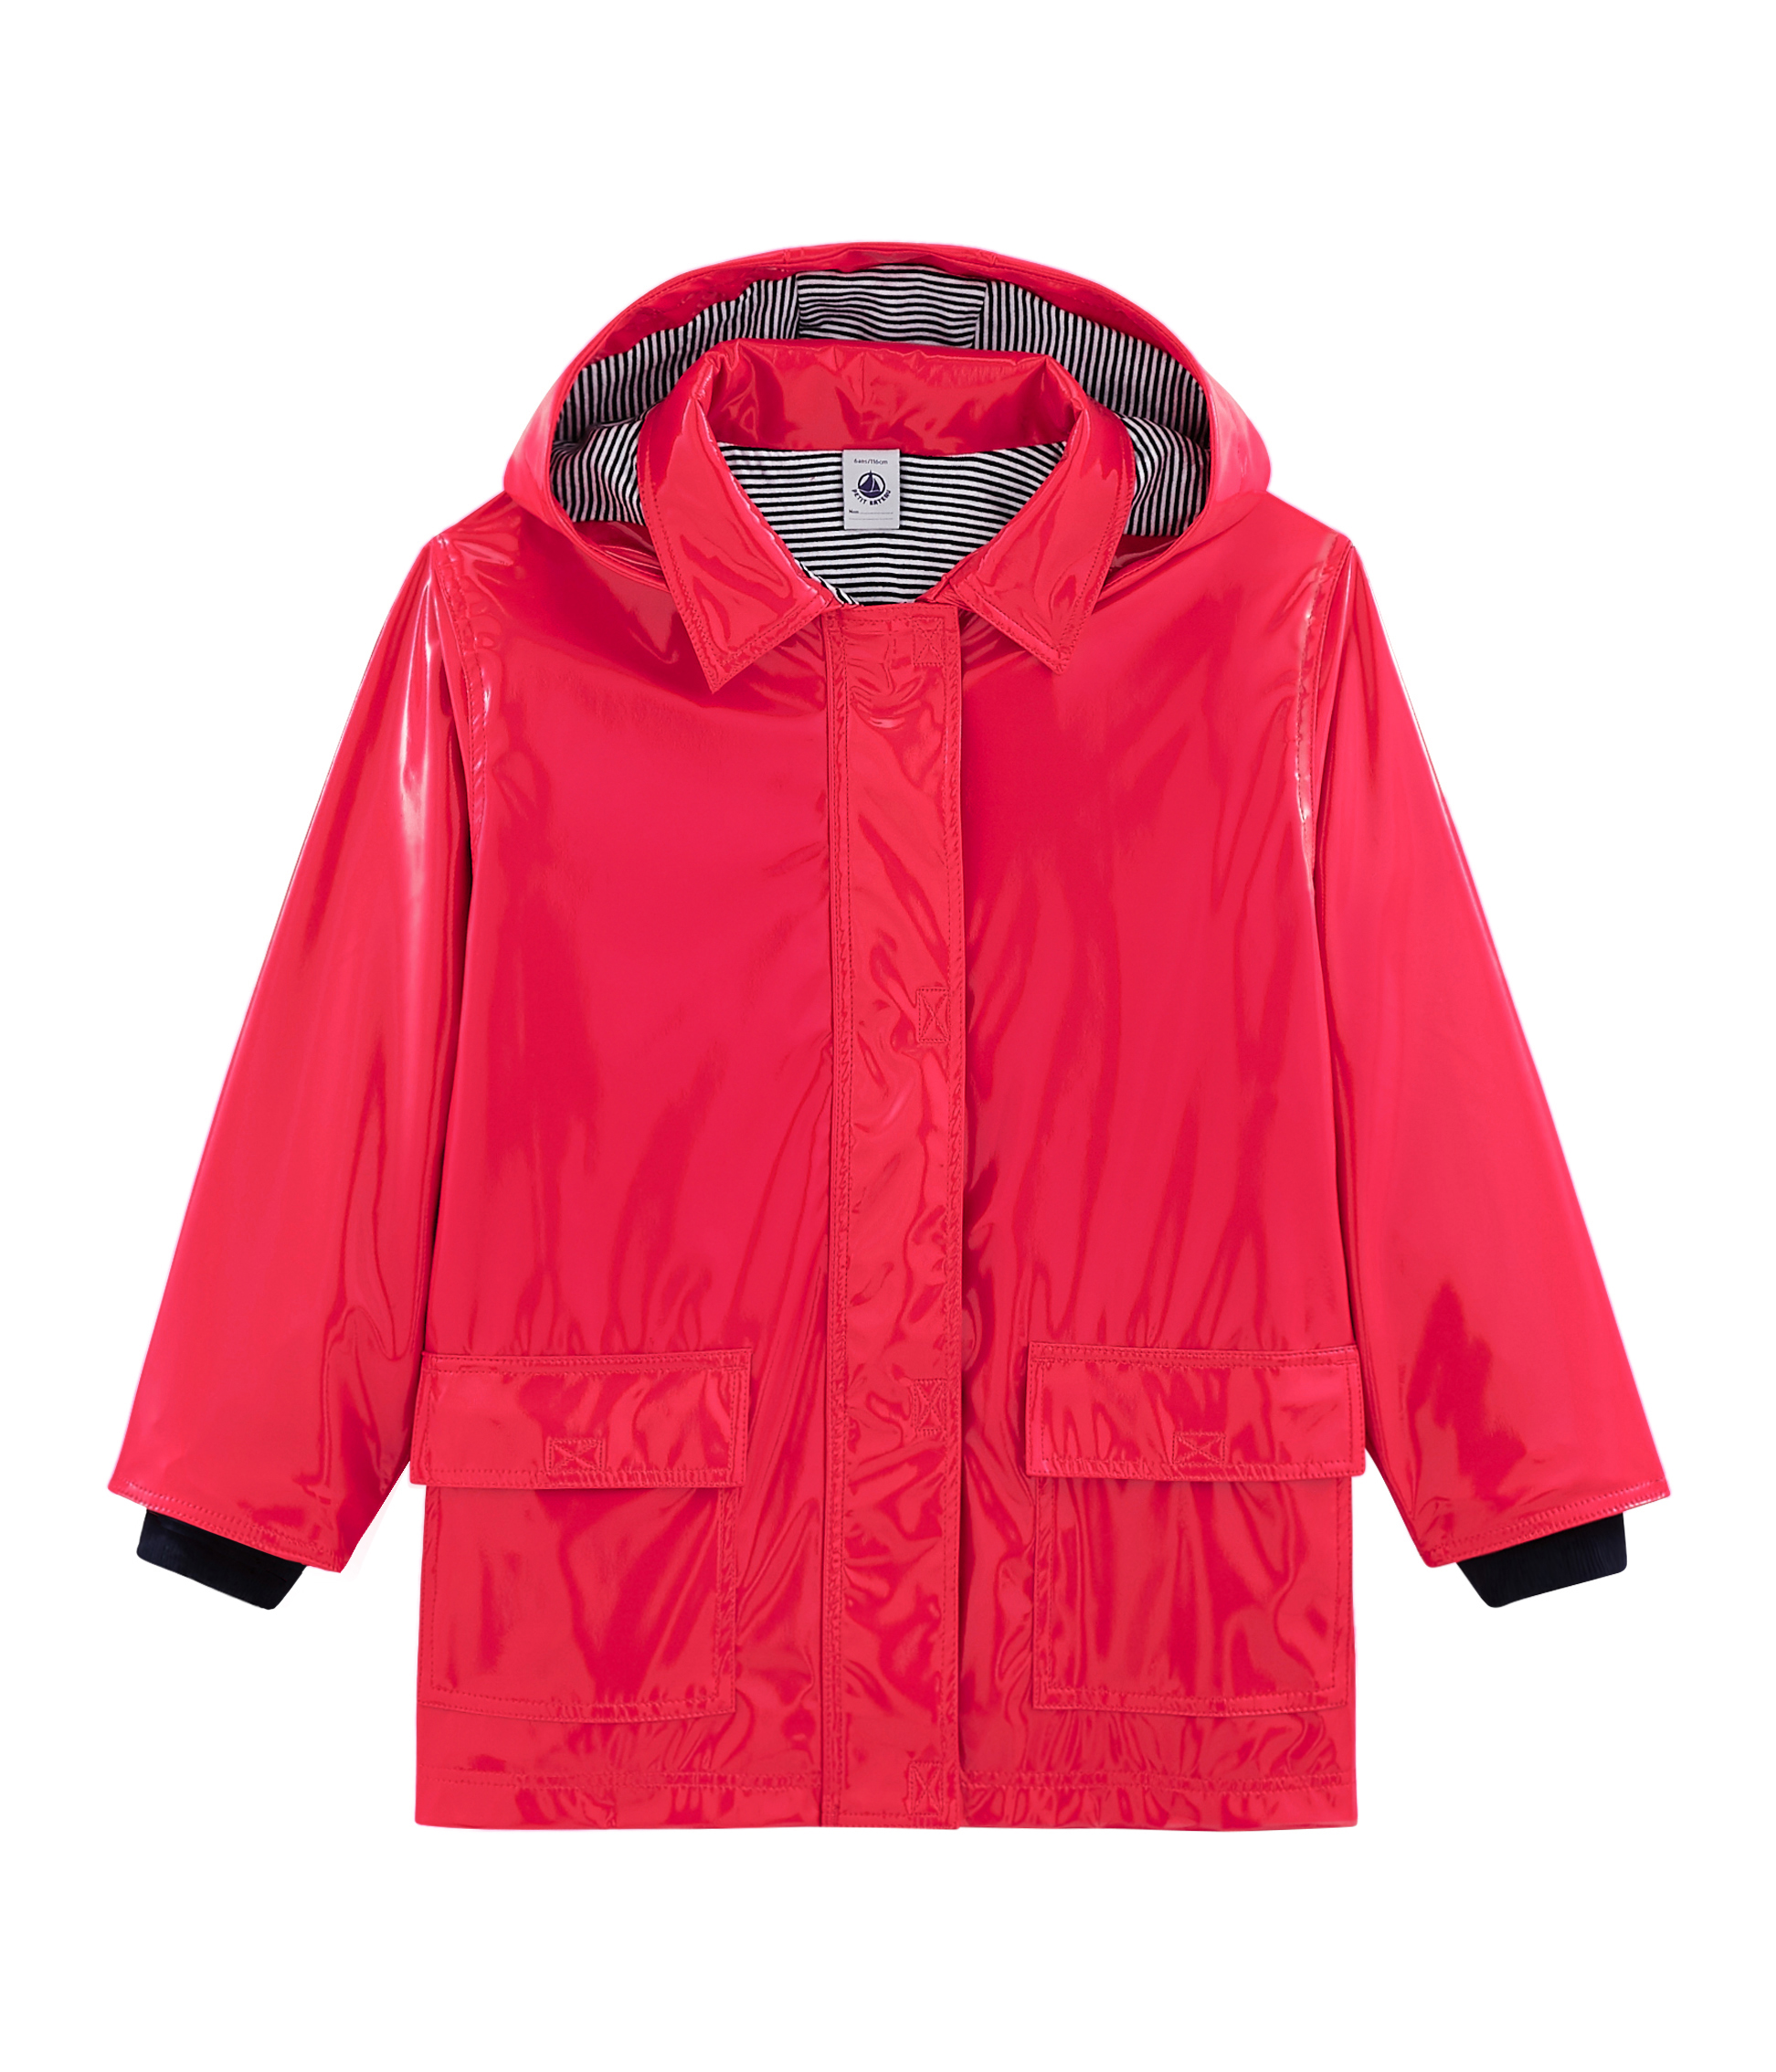 Girls' Gloss Raincoat